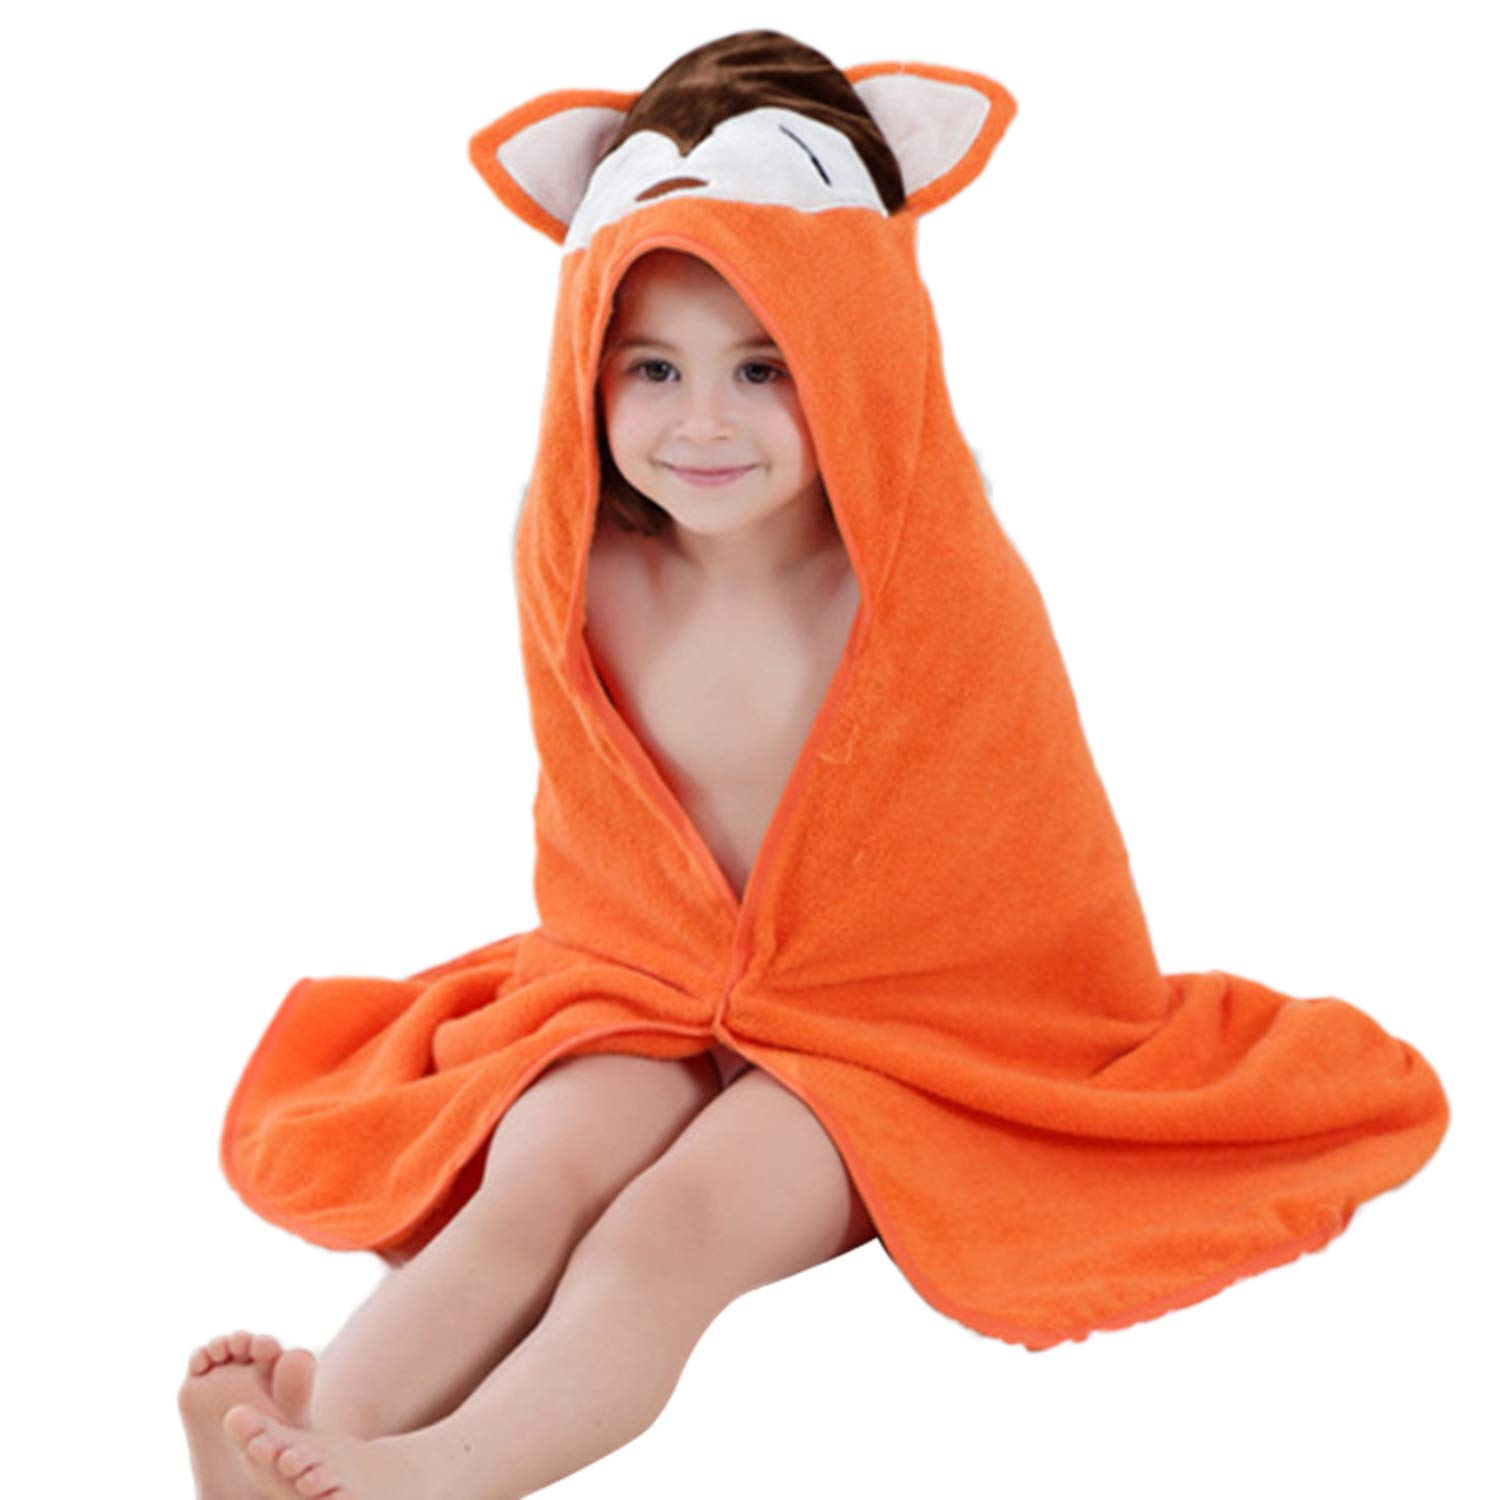 SSTQSAA Animal Fox Giraffe Style Hooded Baby Bath Towel Toddler Premium Cotton Absorbent Bathrobe Beach Cloak 35